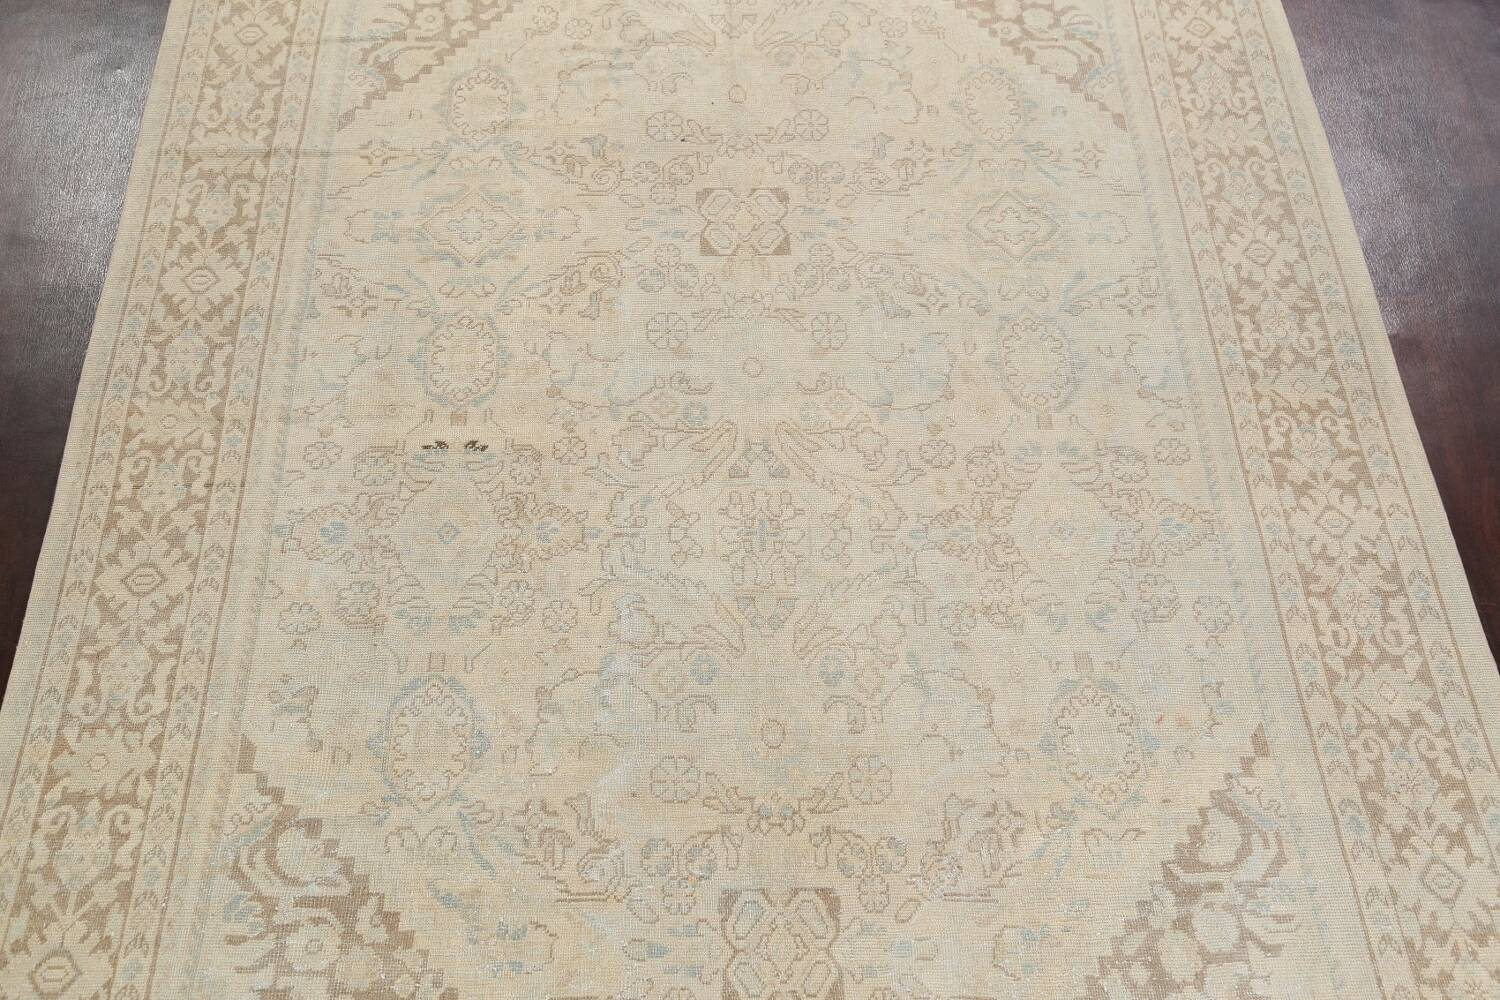 Antique Floral Mahal Persian Area Rug 9x12 image 3